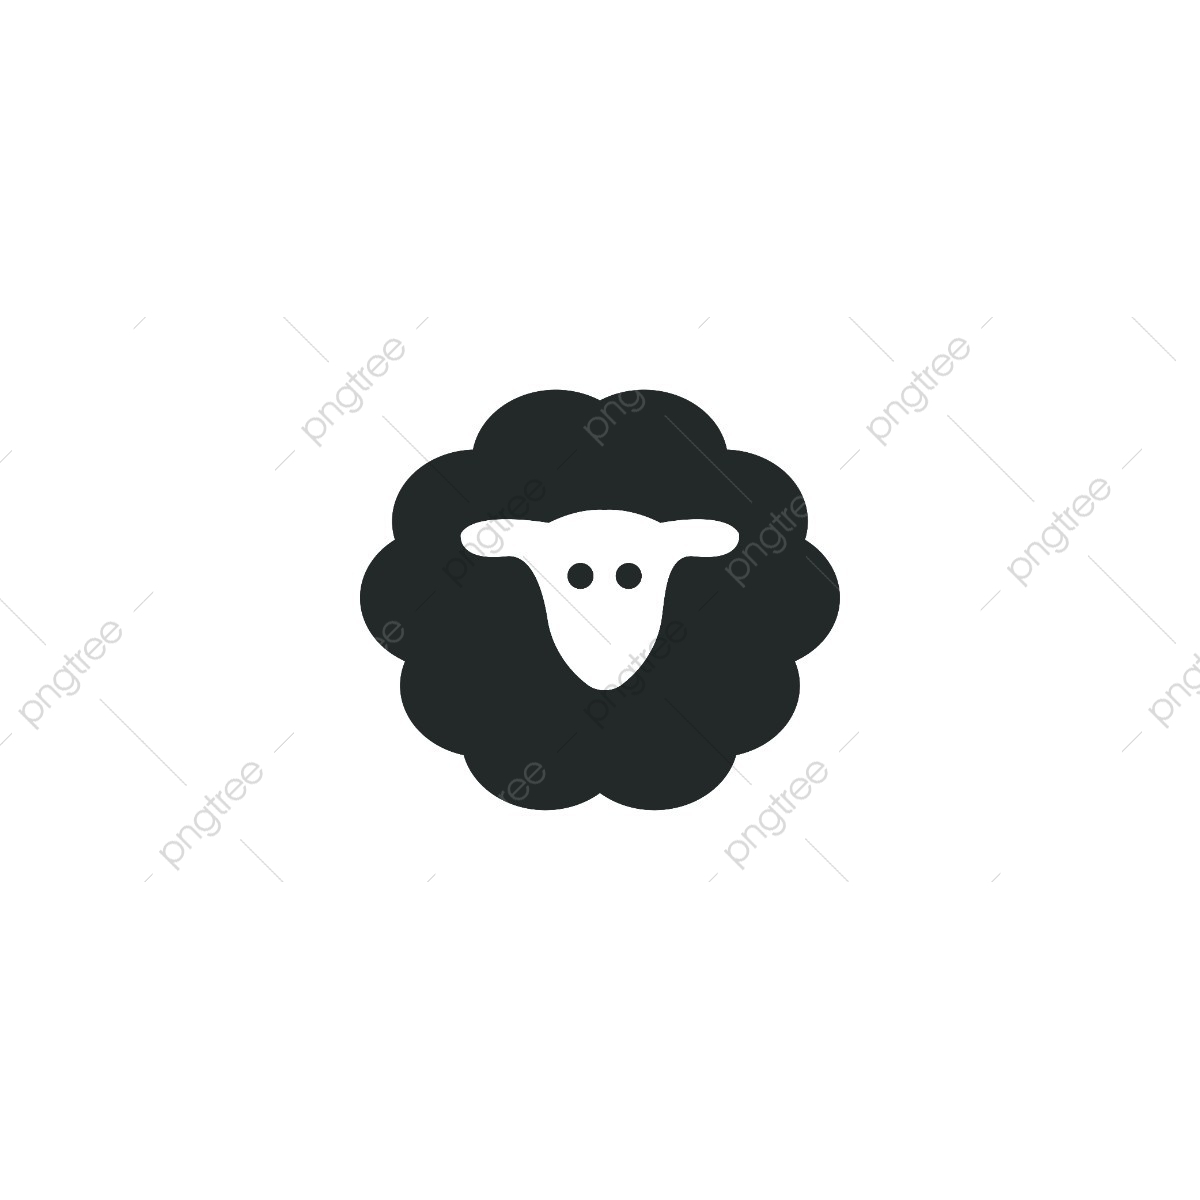 Sheep Template | Sheep Icon Template Sheep Icon Symbol Png And Vector With